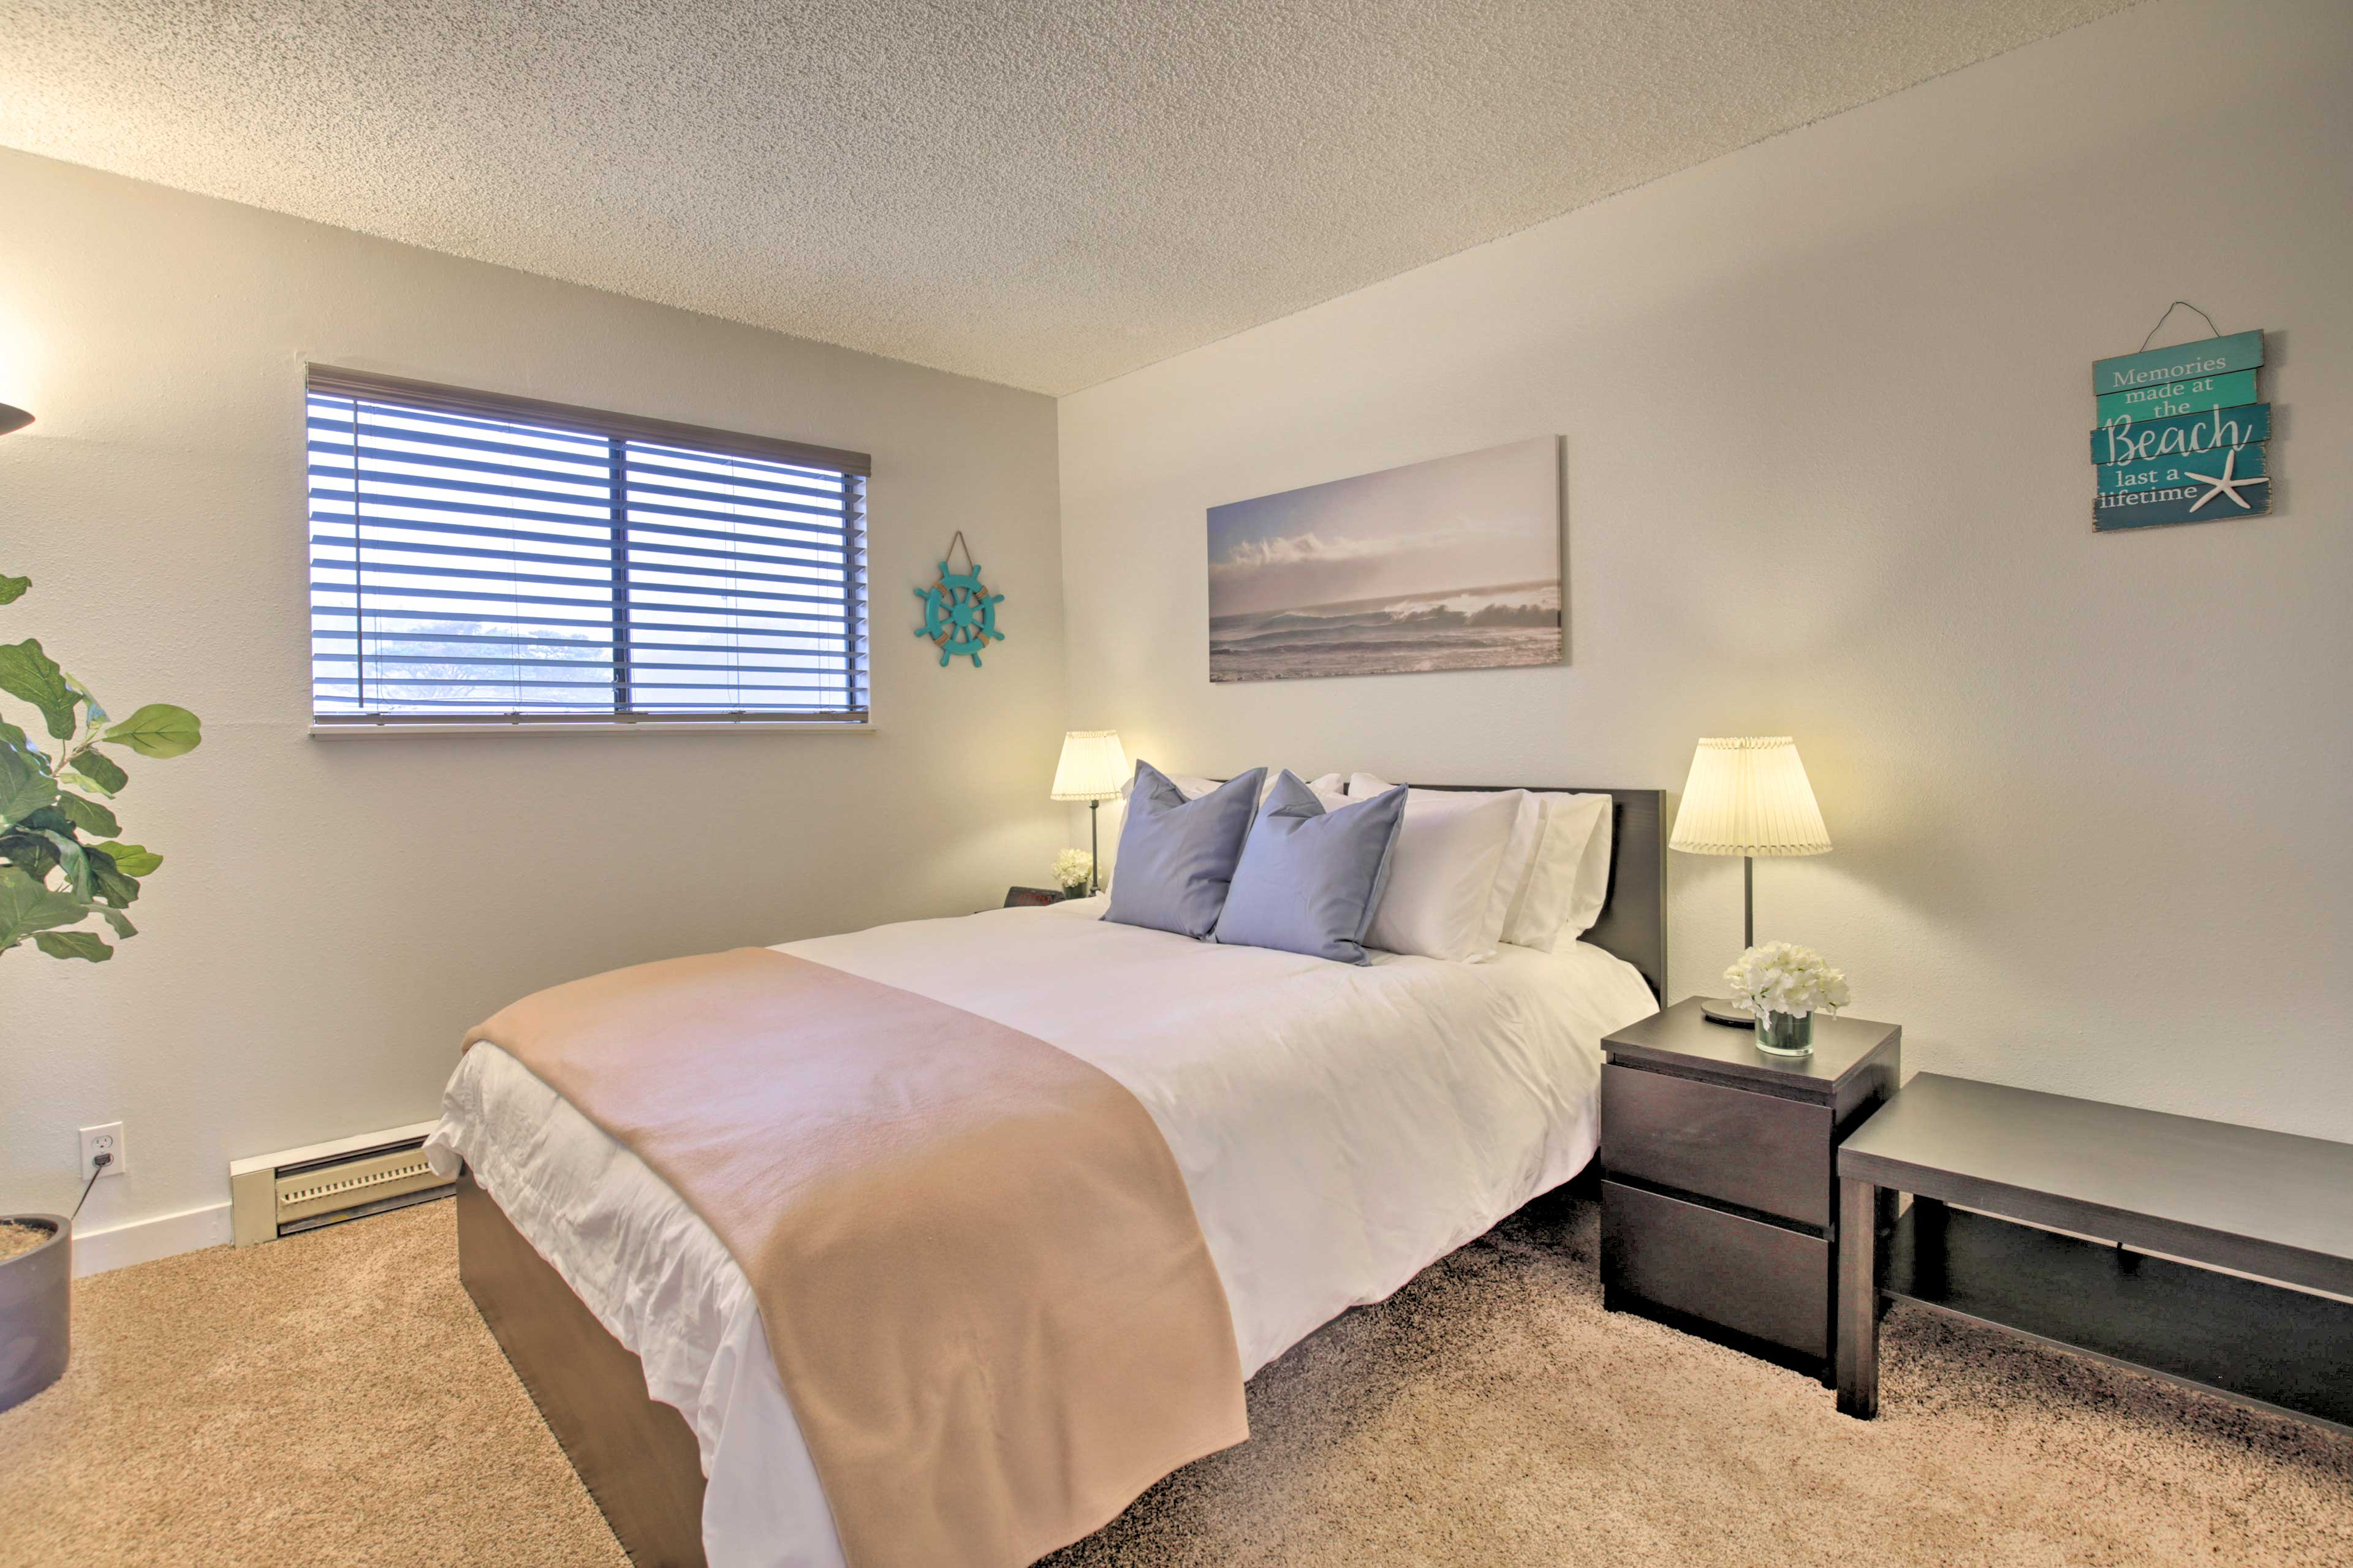 The master bedroom boasts a comfy queen-sized bed for 2.